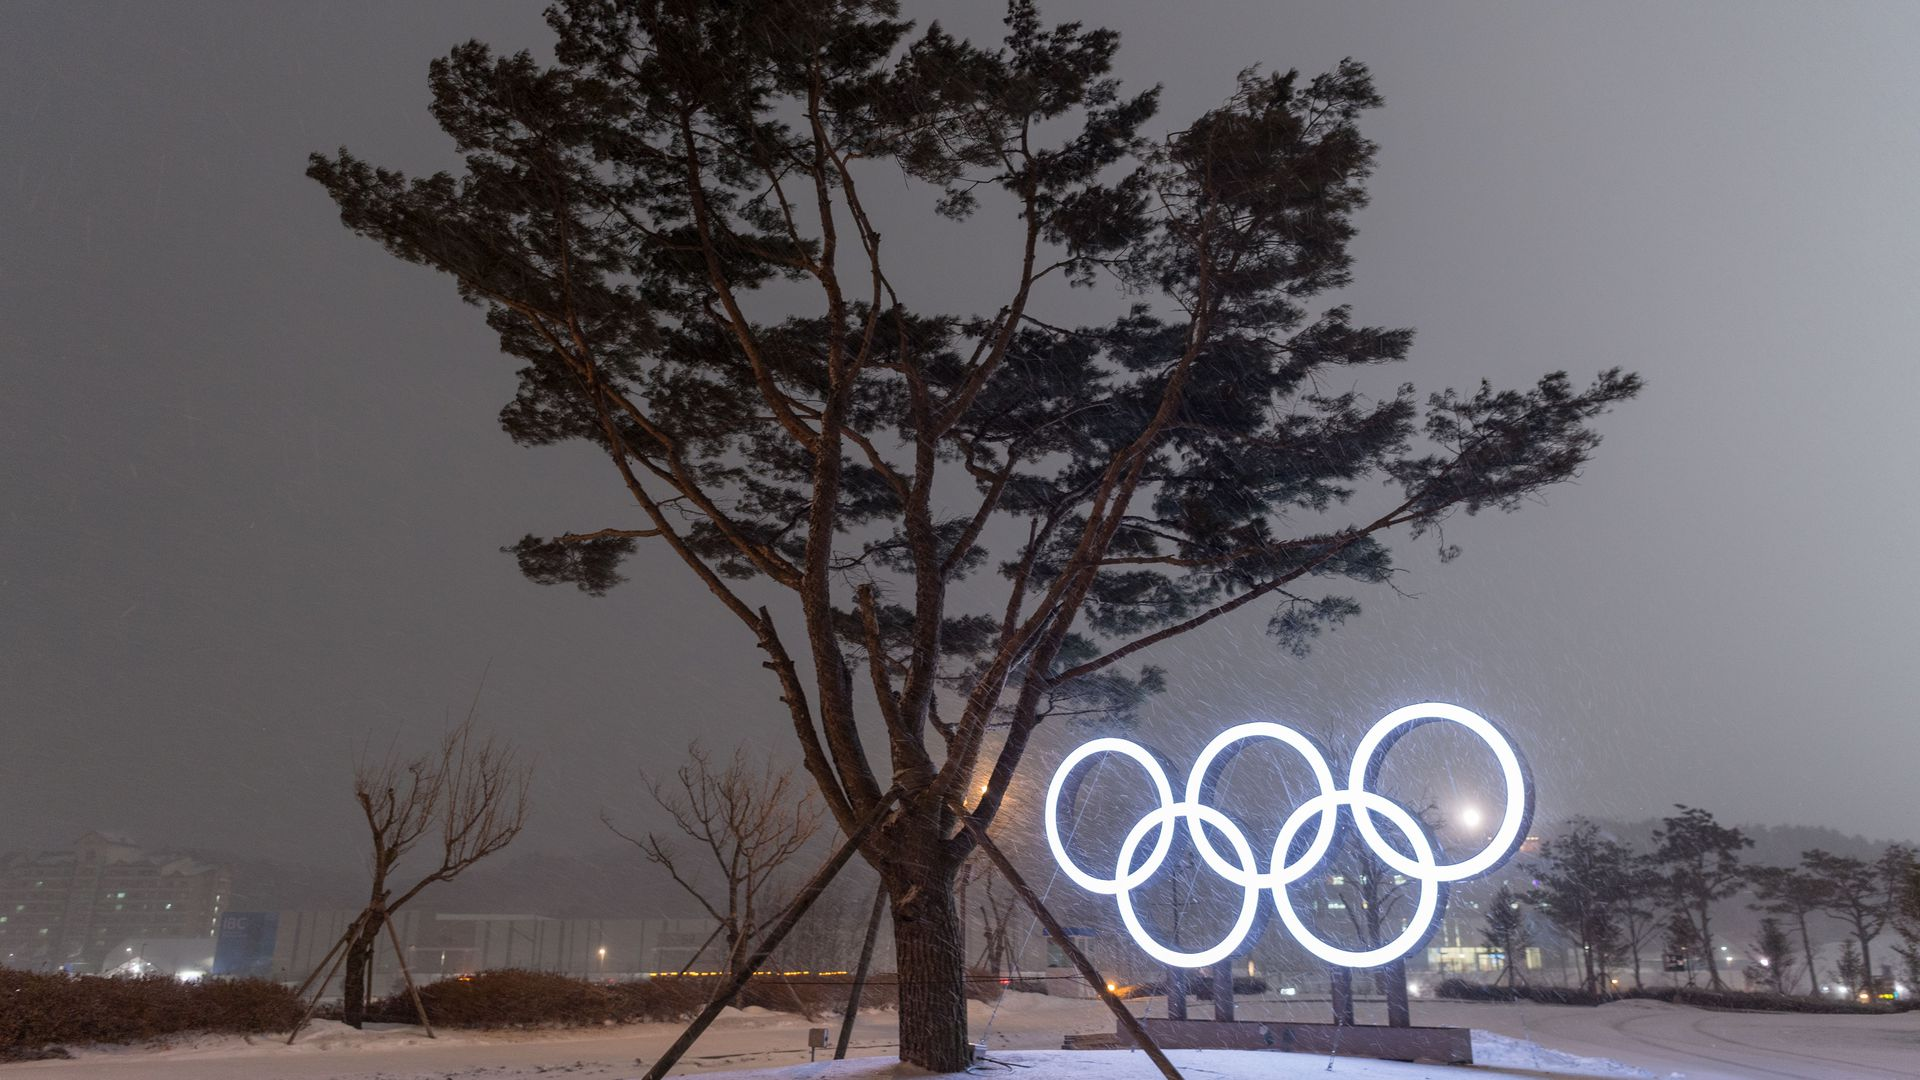 The Olympic rings as snow falls